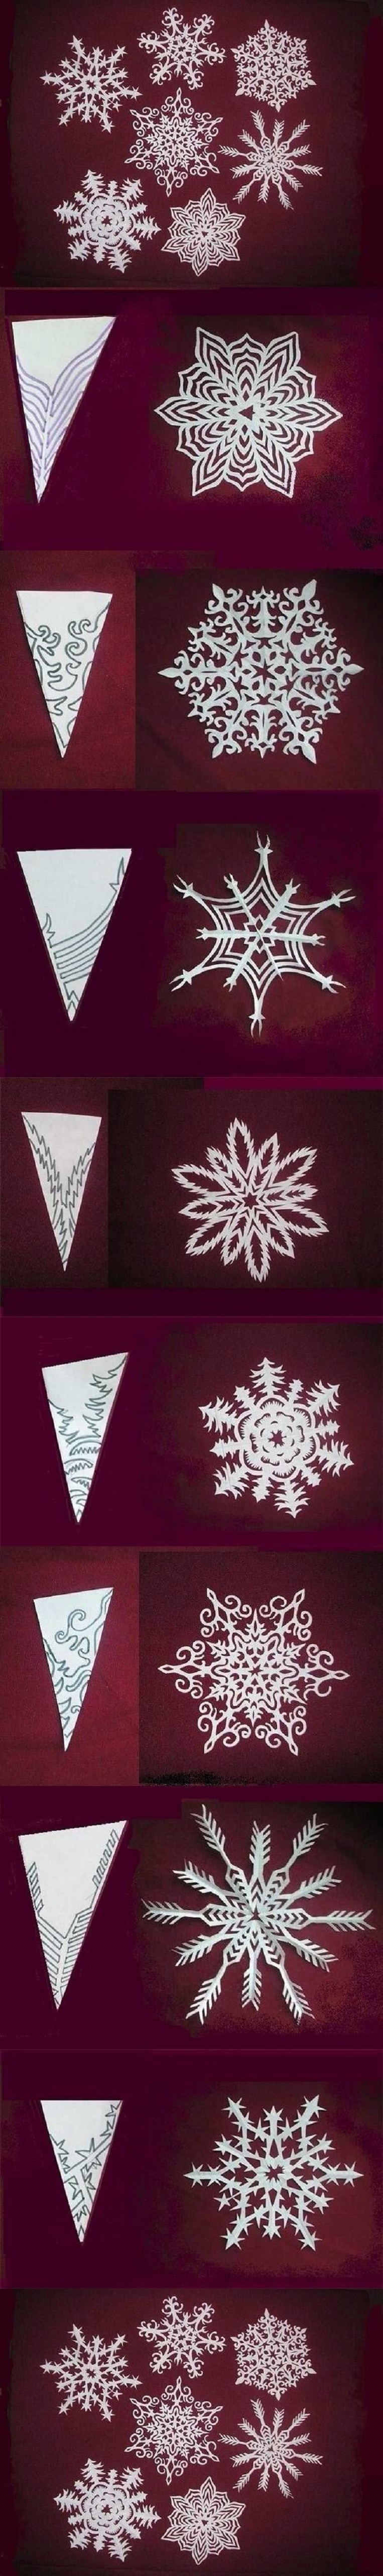 31 Cute and Fun DIY Christmas Decorations Paper